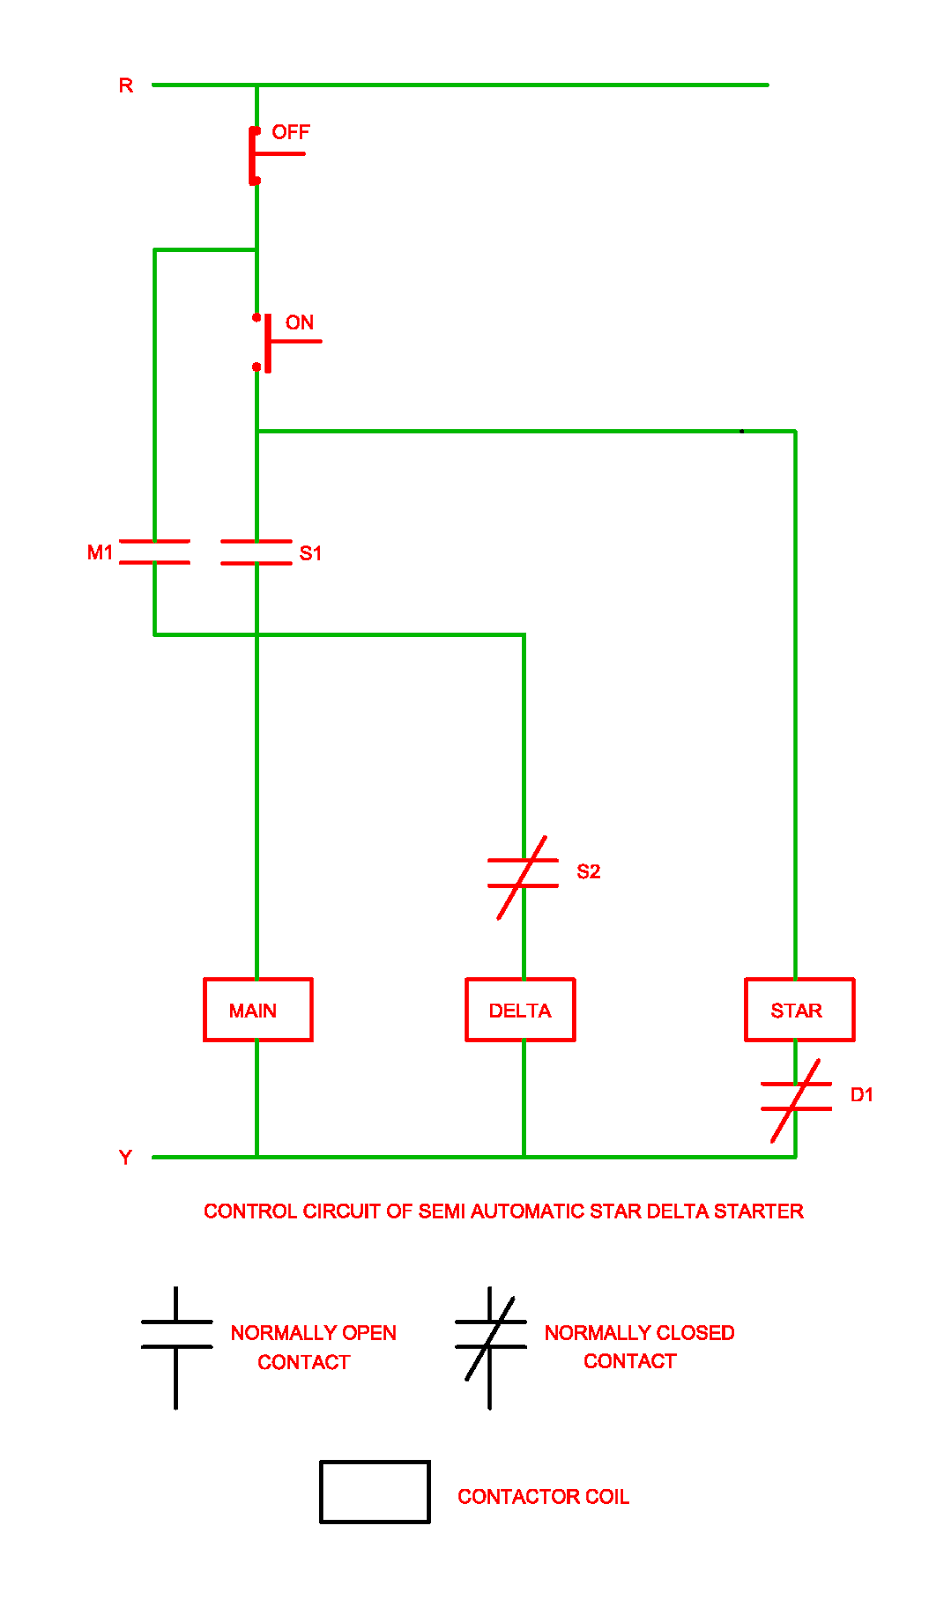 Control Circuit Of Semi Automatic Star Delta Starter Electrical Wiring Diagram Pdf Starterpdf